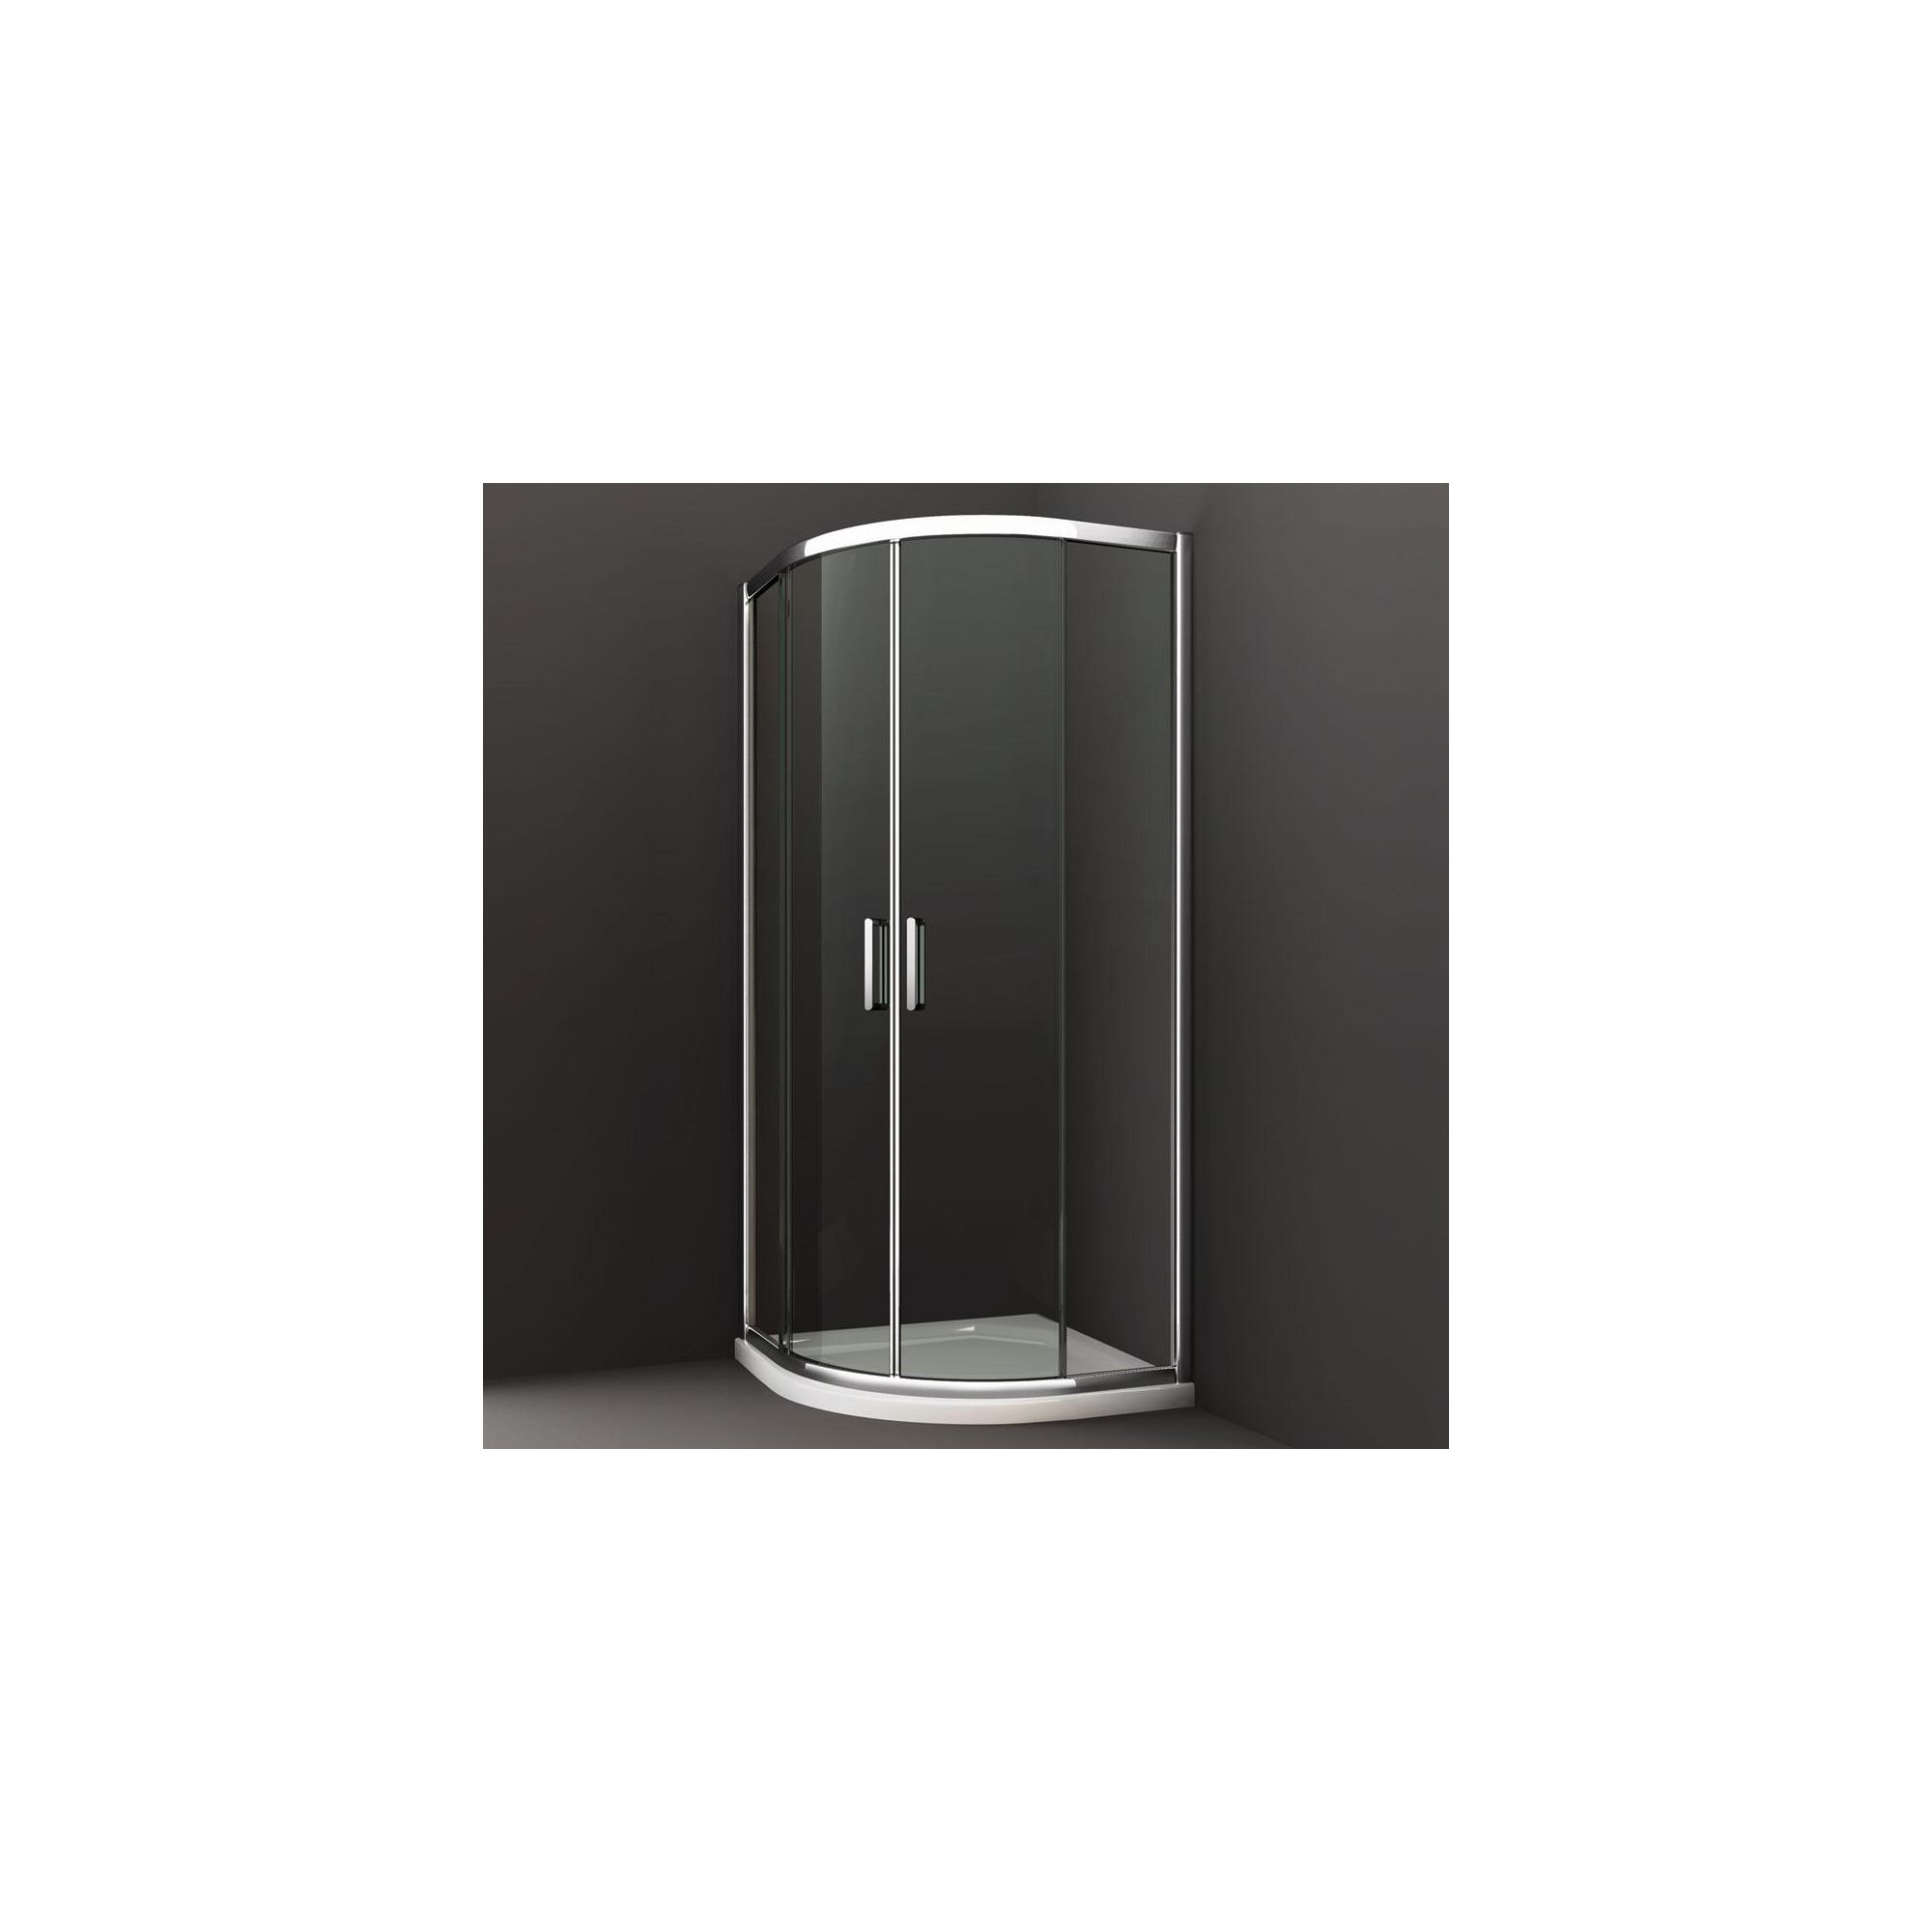 Merlyn Series 8 Double Quadrant Shower Door, 1000mm x 1000mm, Chrome Frame, 8mm Glass at Tesco Direct